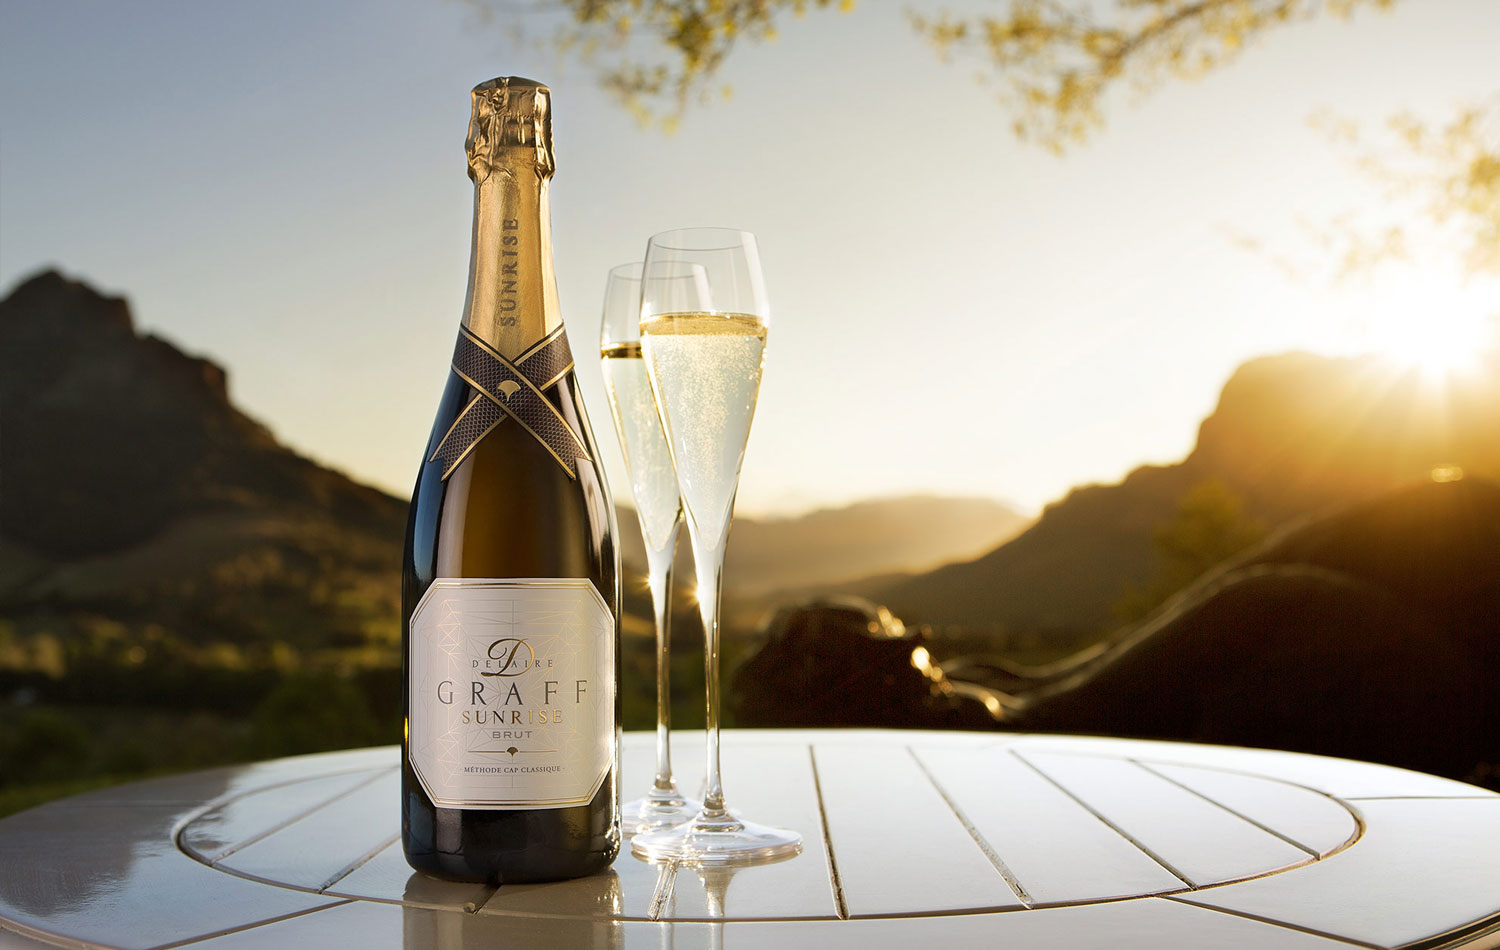 A bottle of Delaire Graff Sunrise Brut sparkling wine